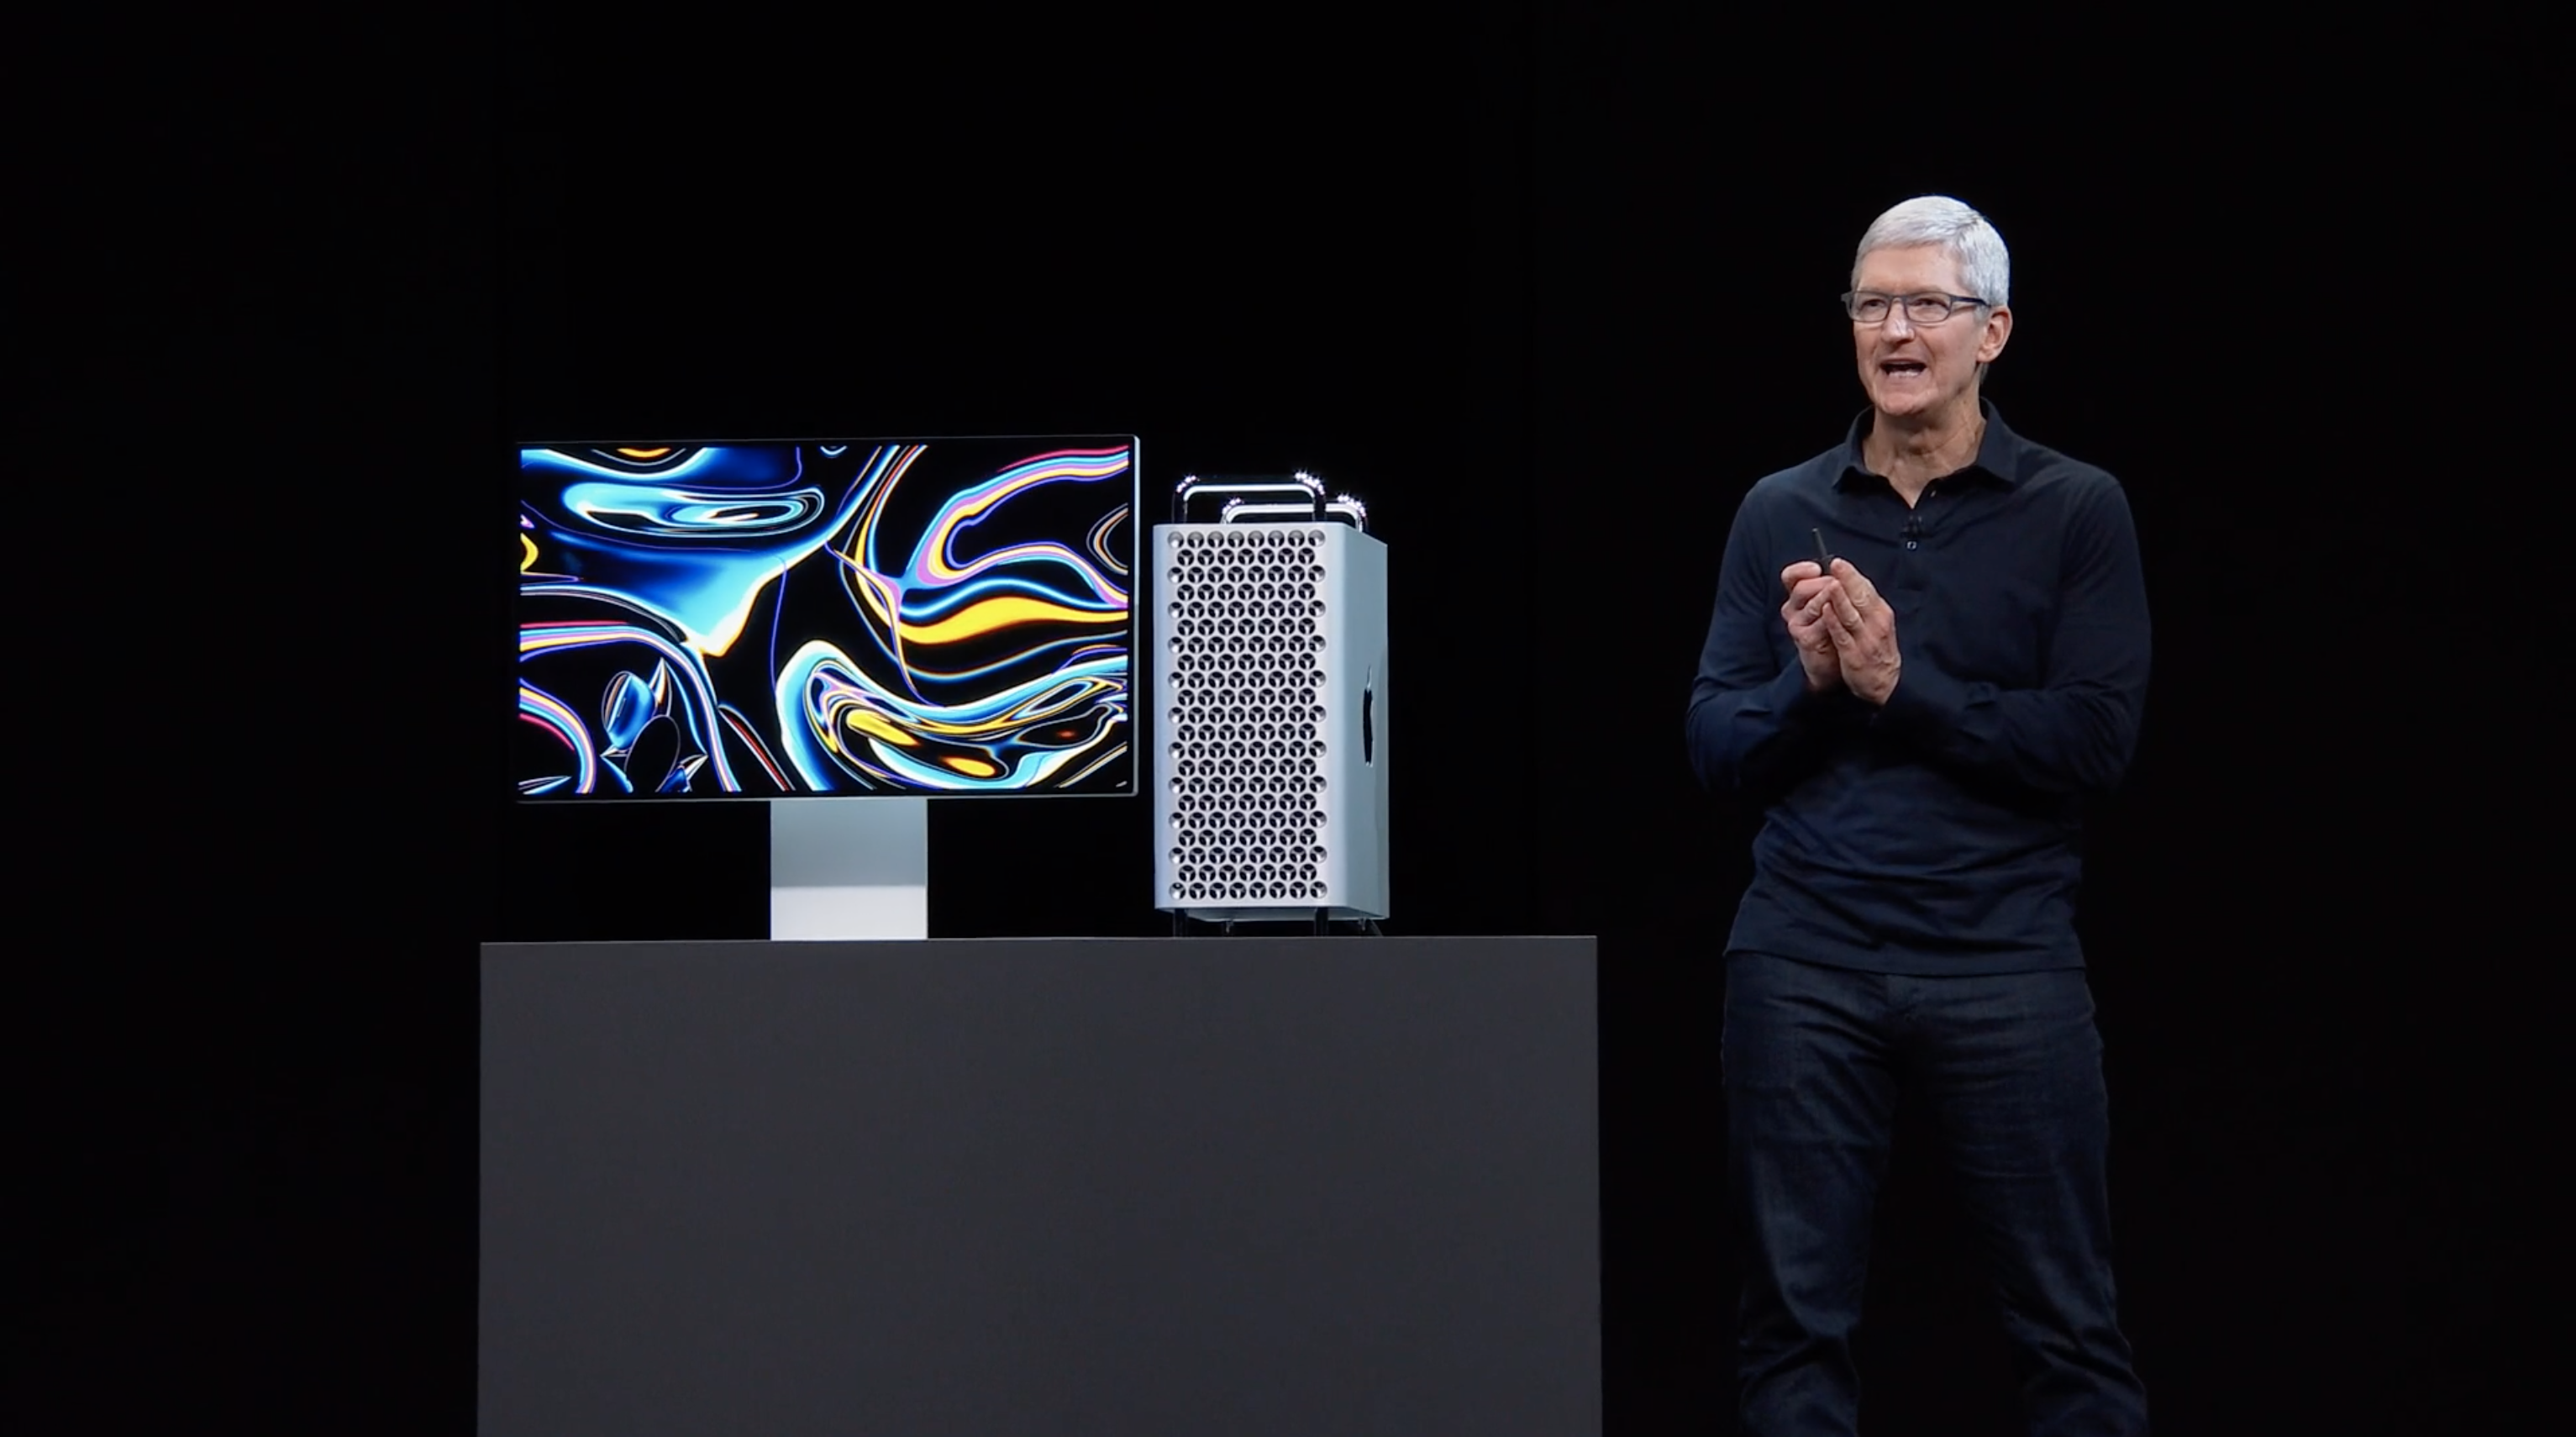 Tim Cook showing the new Mac Pro